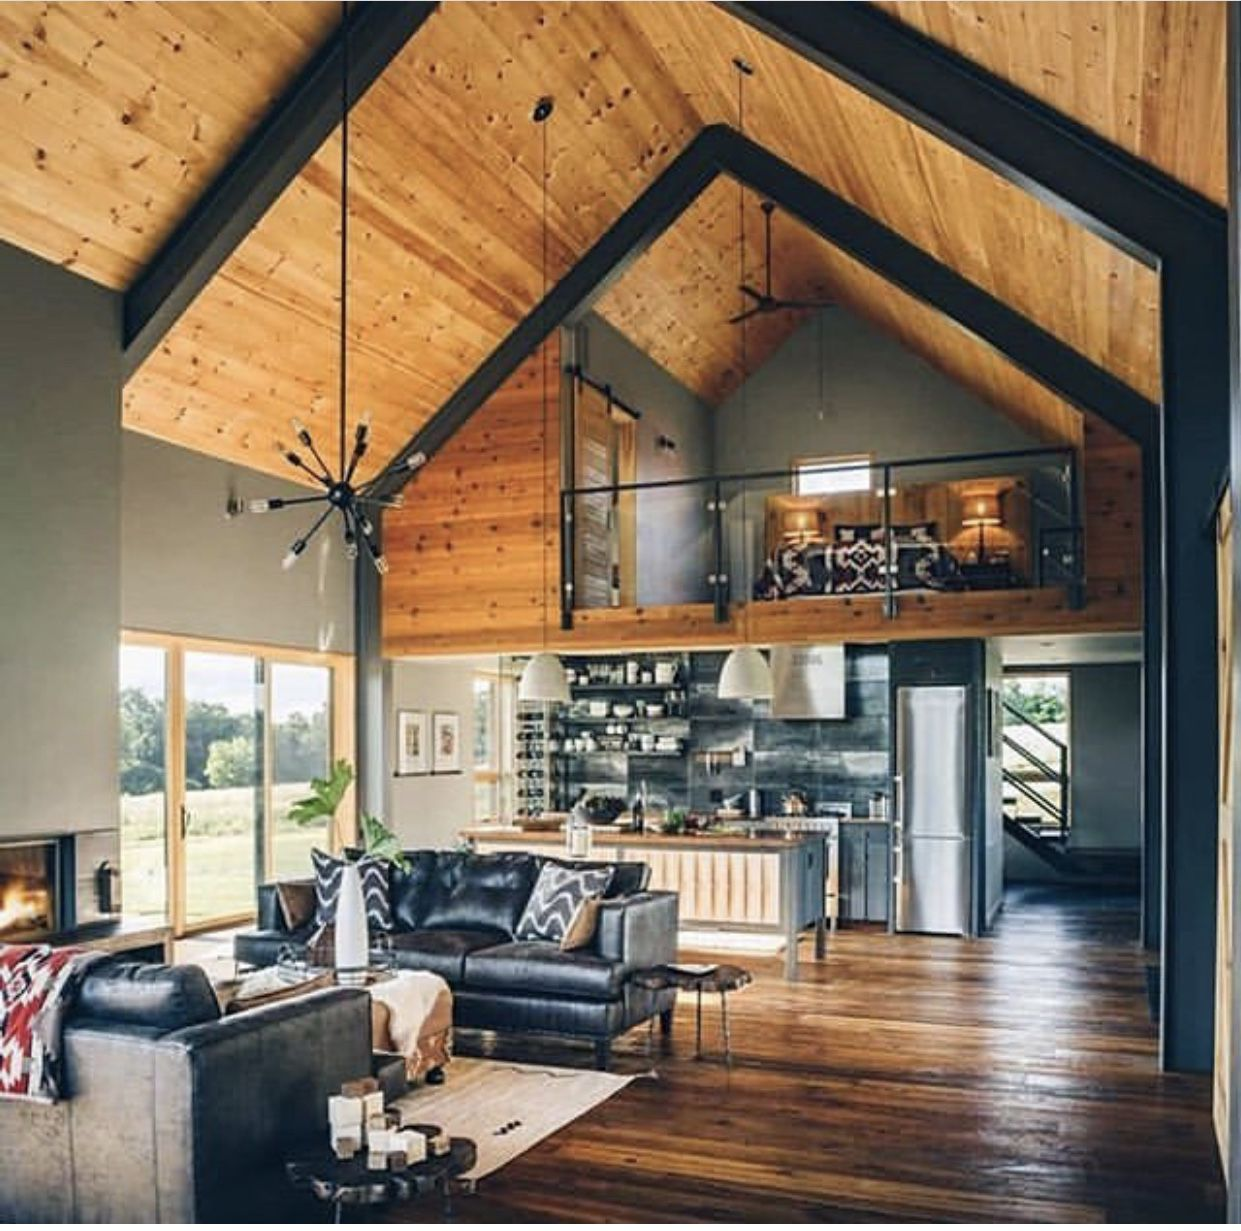 Loft, Vaulted Ceilings, And Wide Open